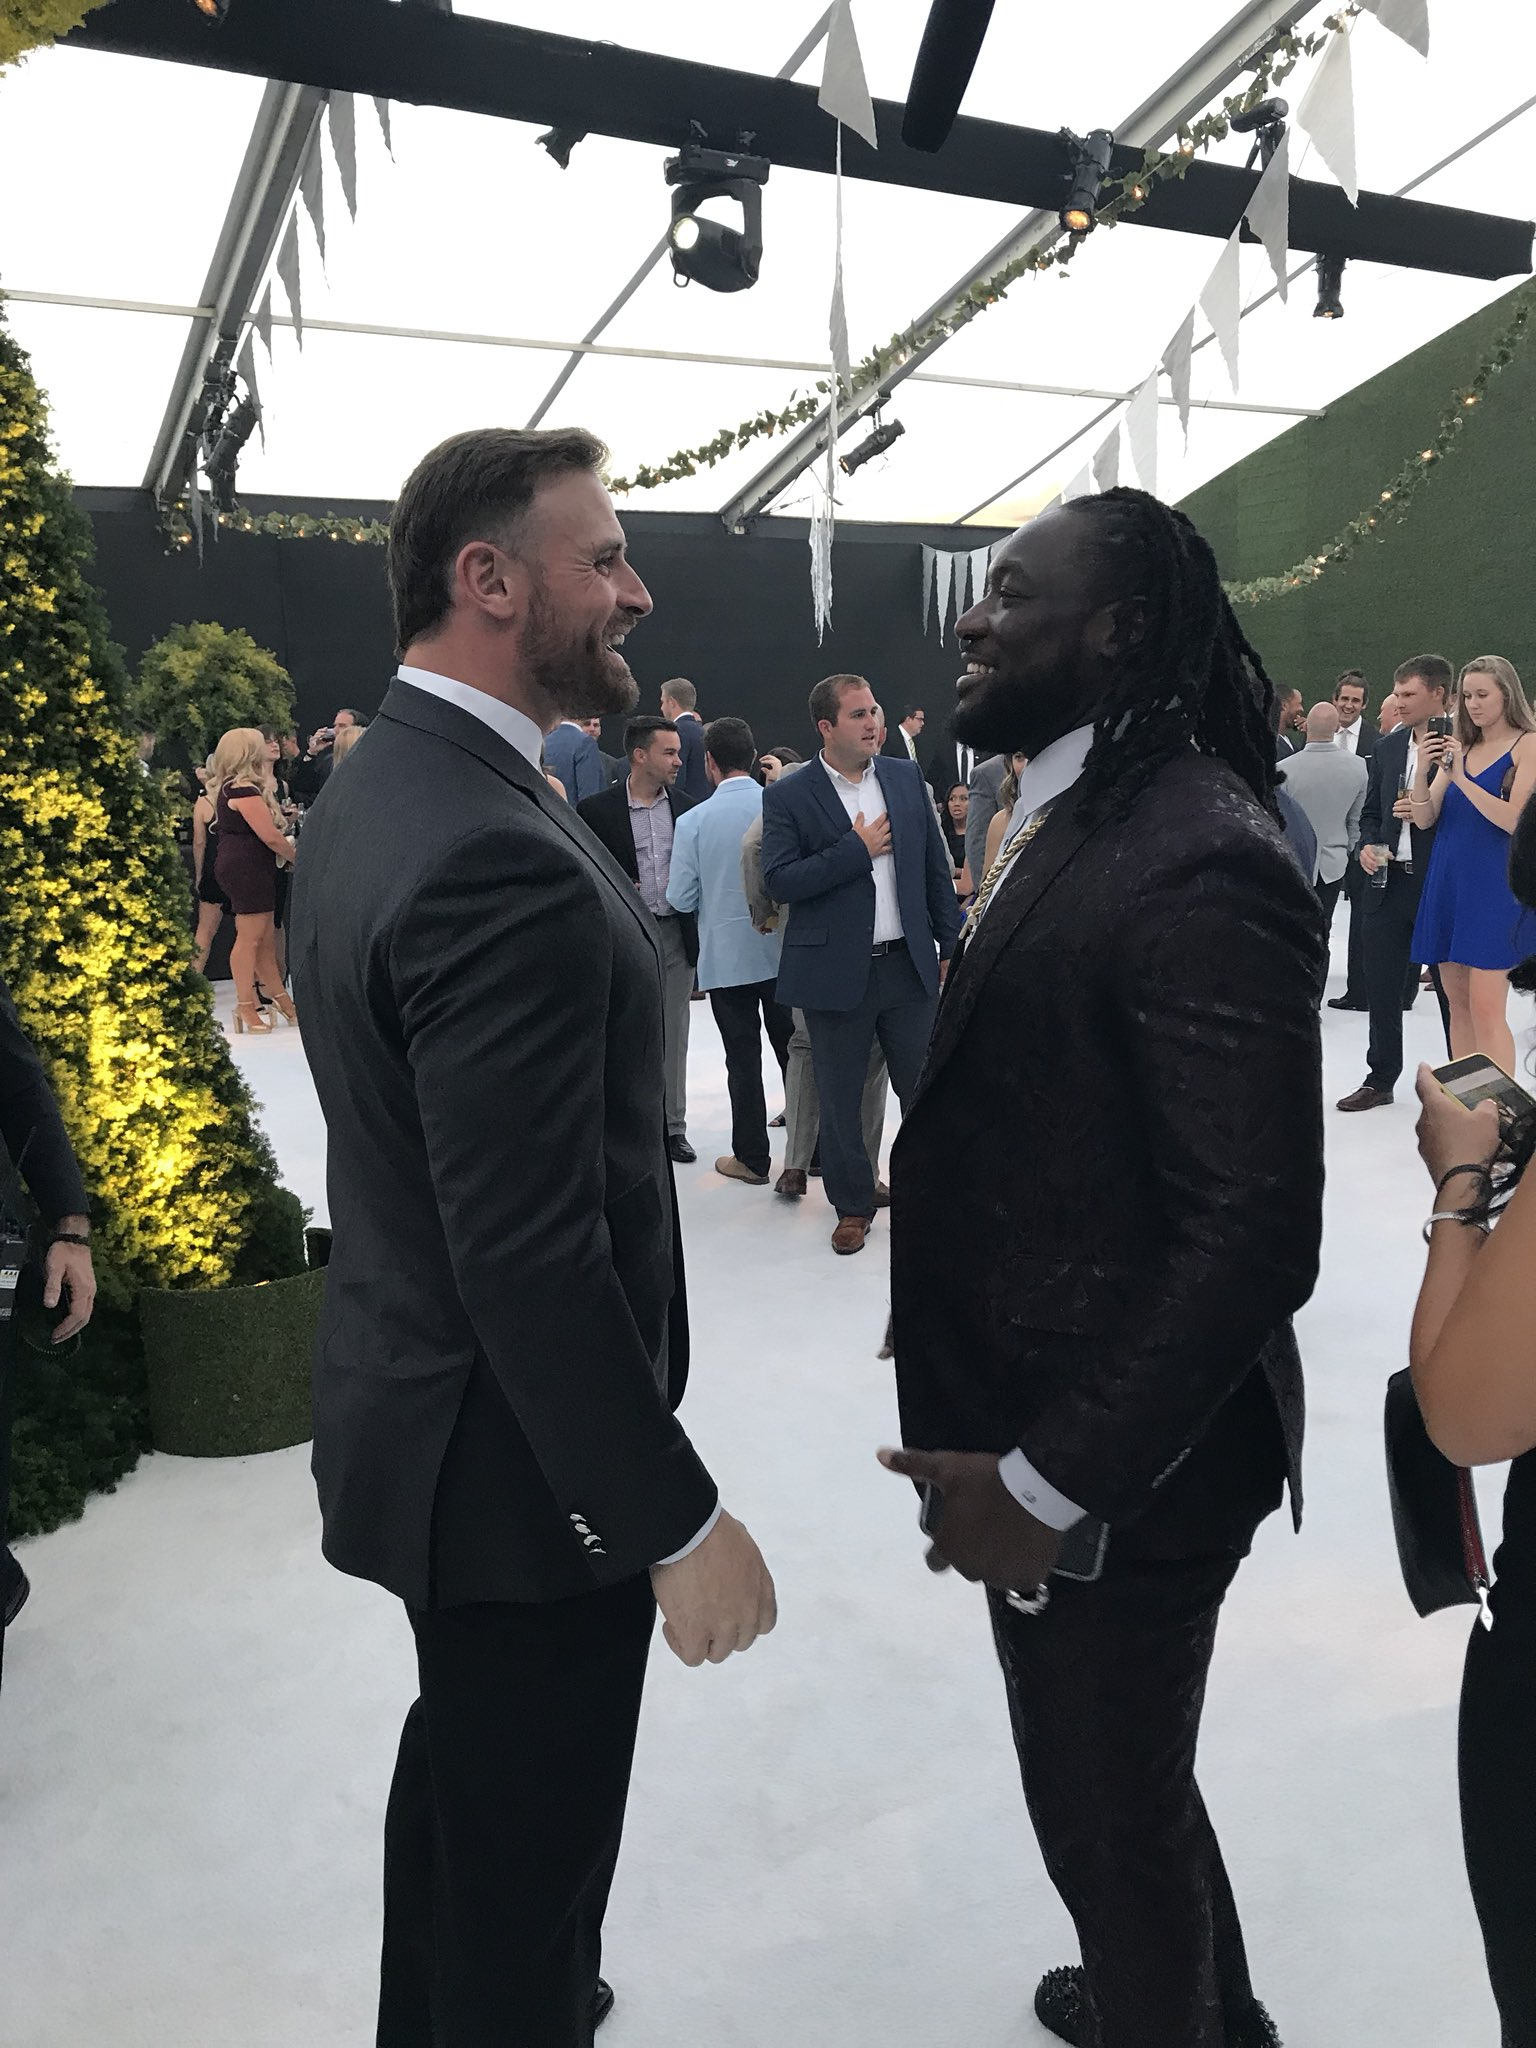 .@JOEL9ONE and @LG_Blount, a Championship reunion.   #FlyEaglesFly https://t.co/ekTO90Gt4A